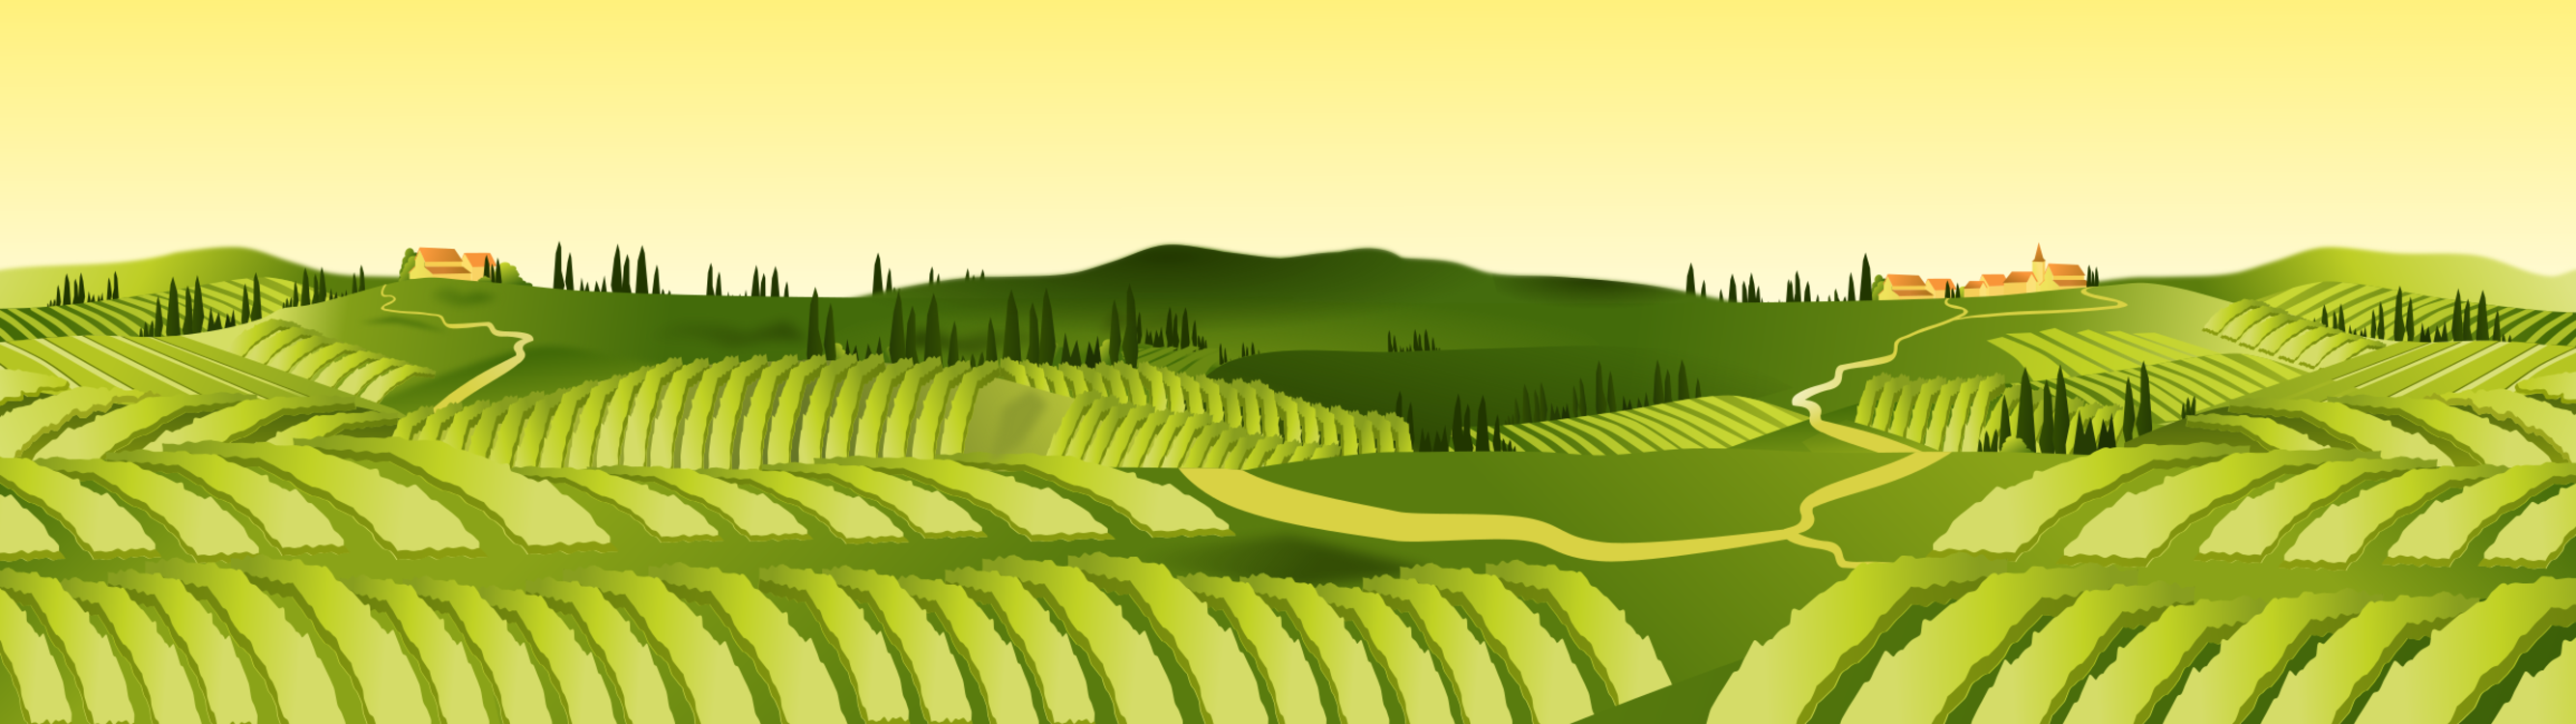 Free clipart of farmers in the fields. Grass family leaf tree